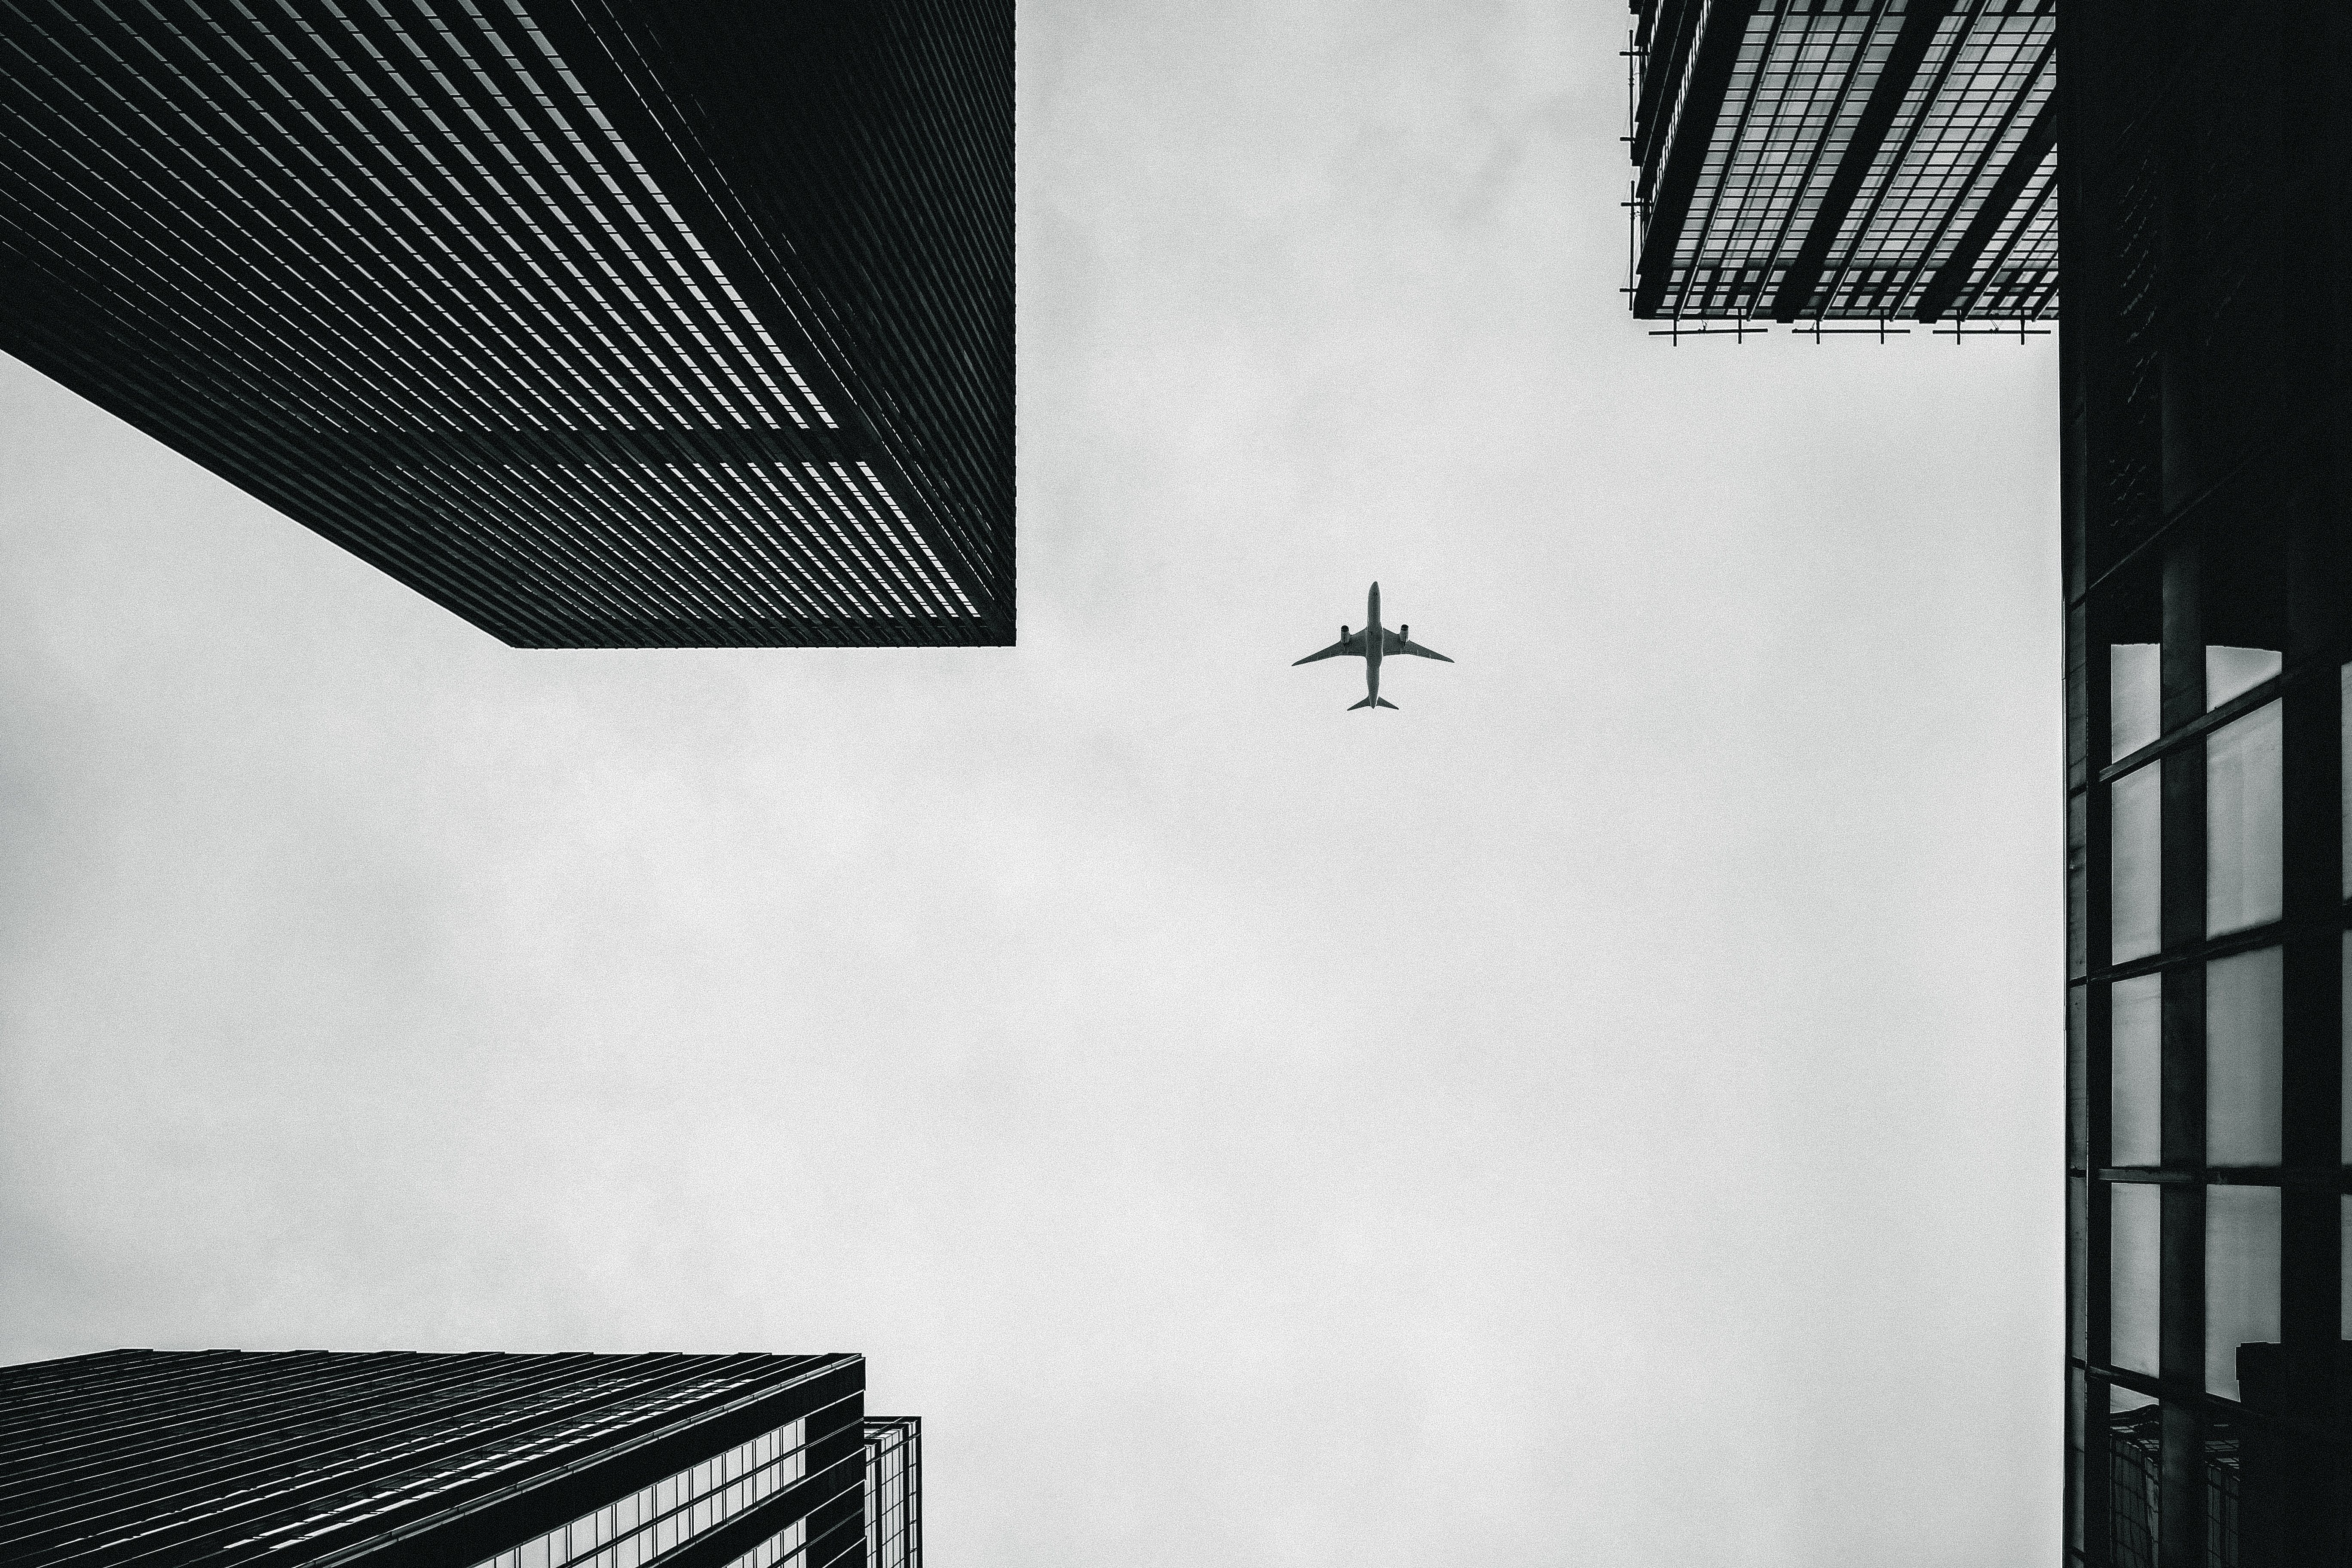 Low Angle Photography of Airplane And Buildings